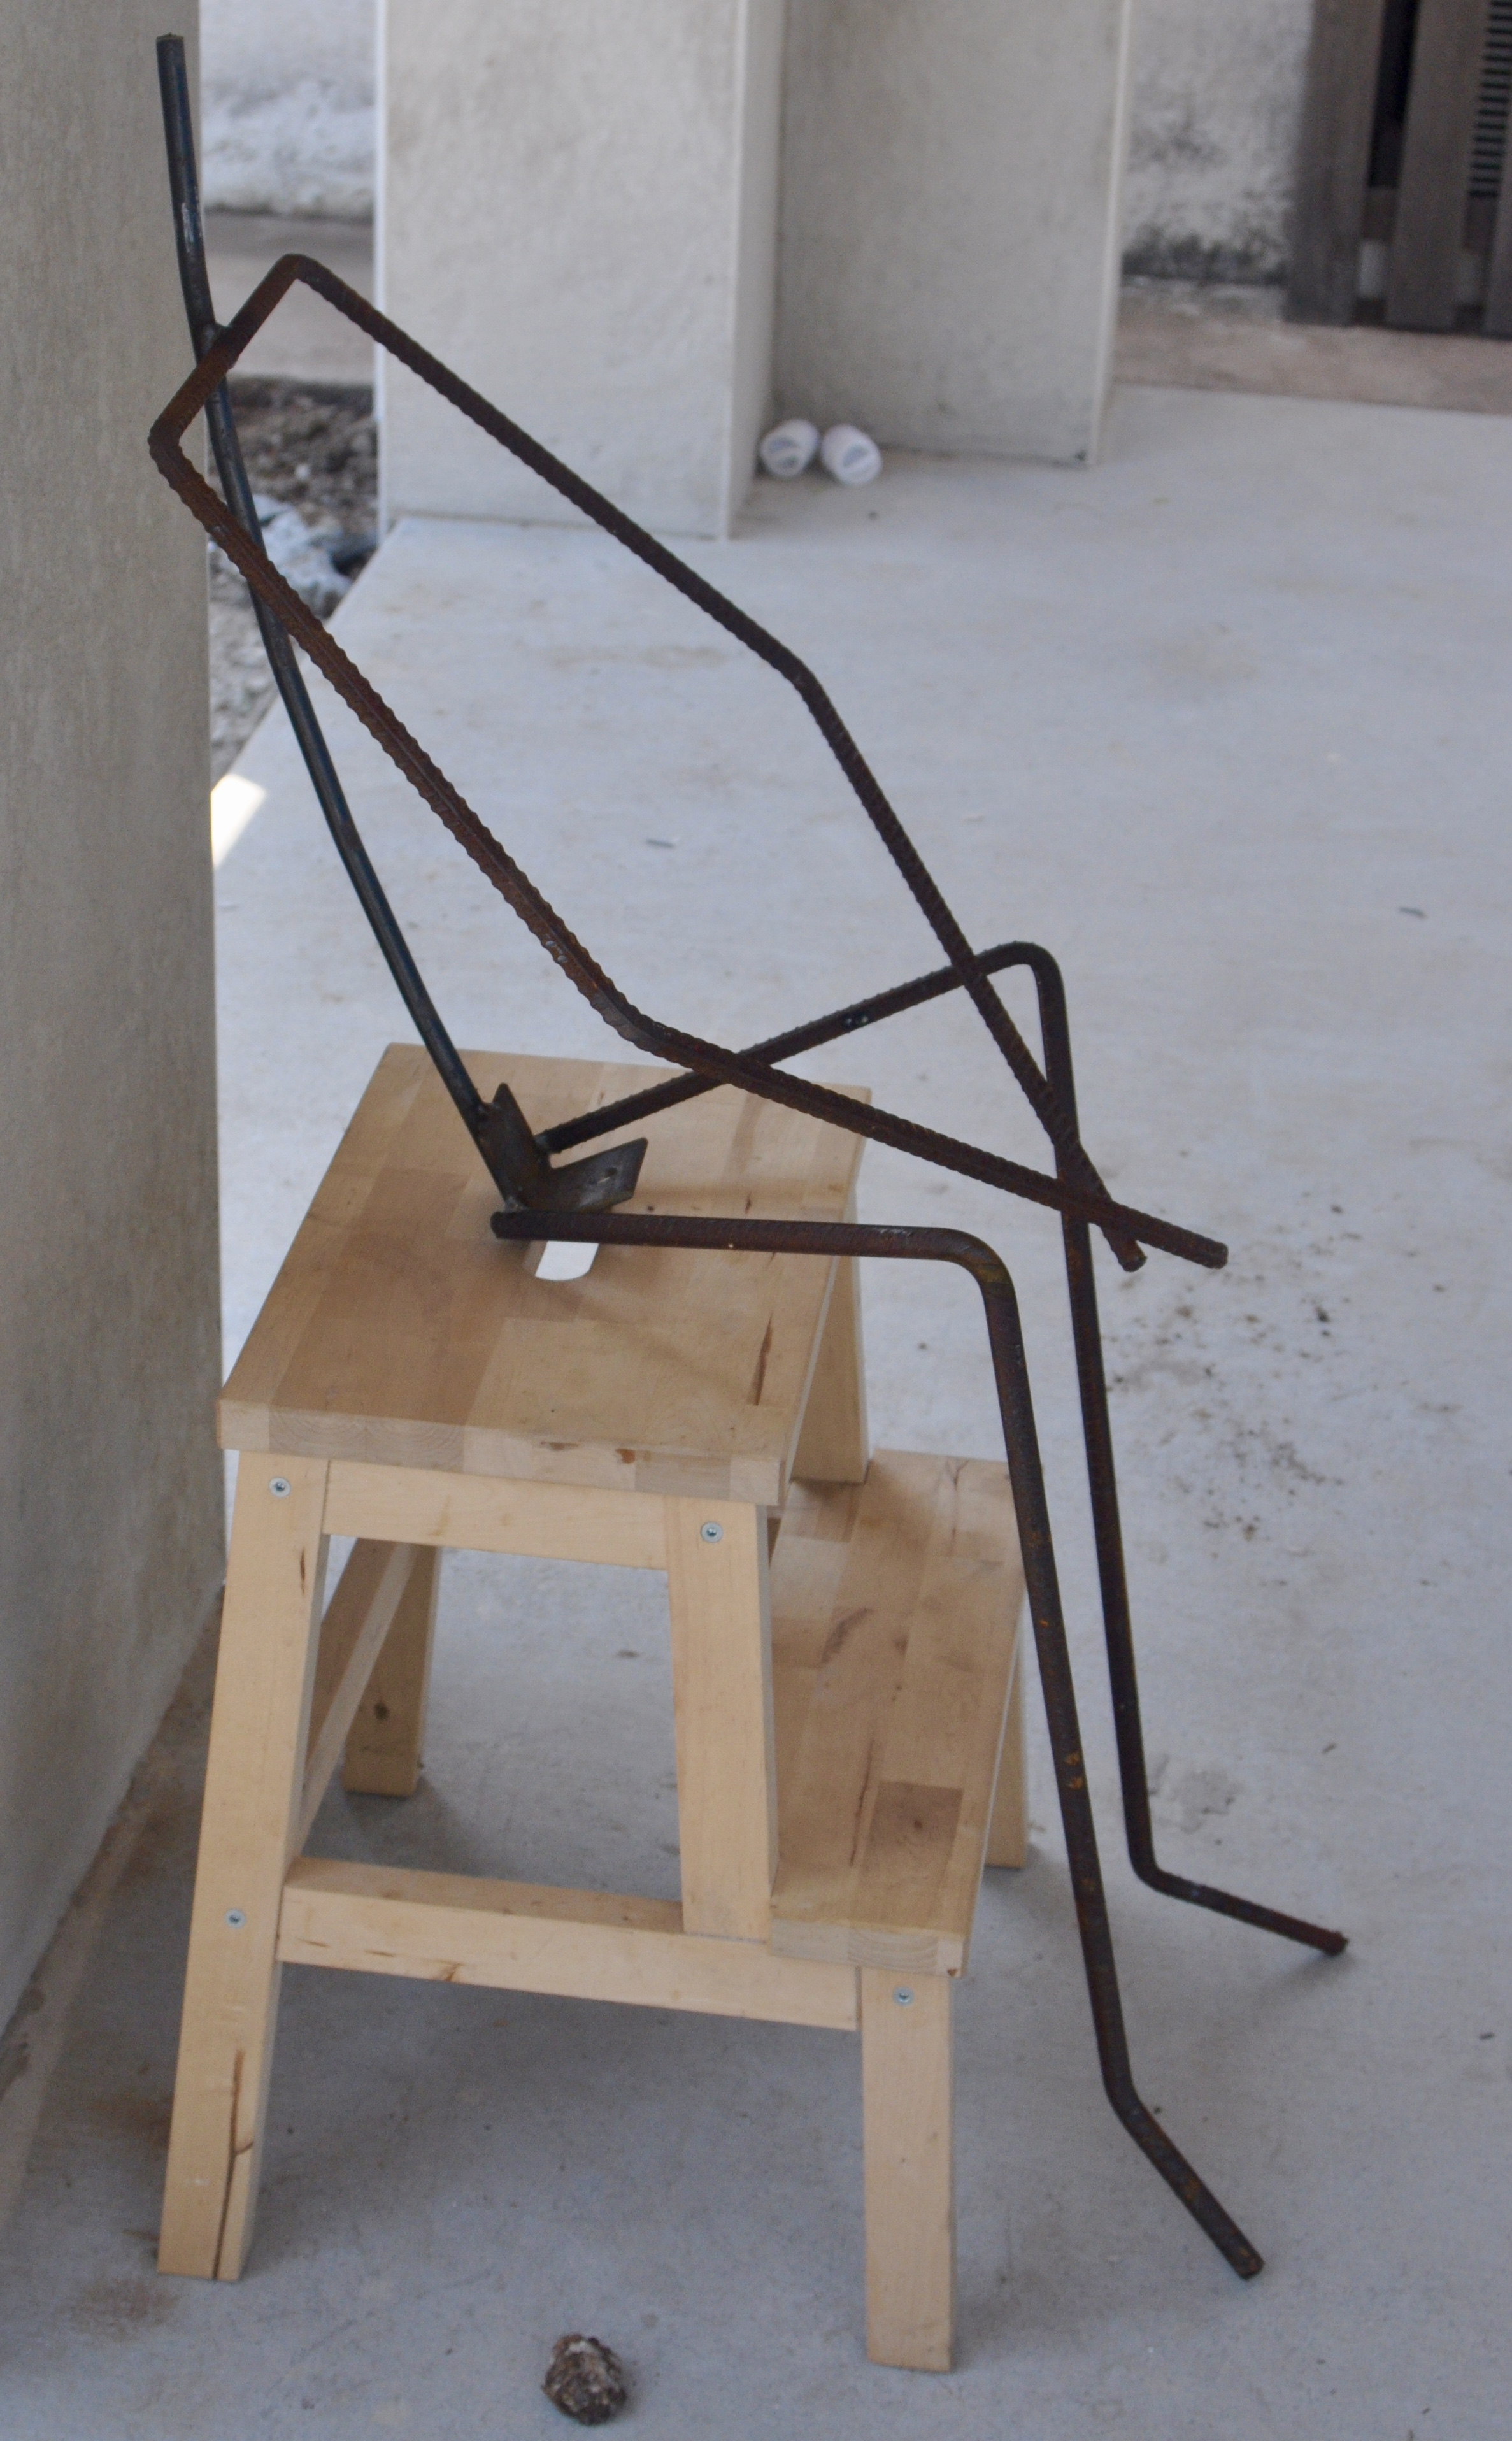 Reinforced steel armature